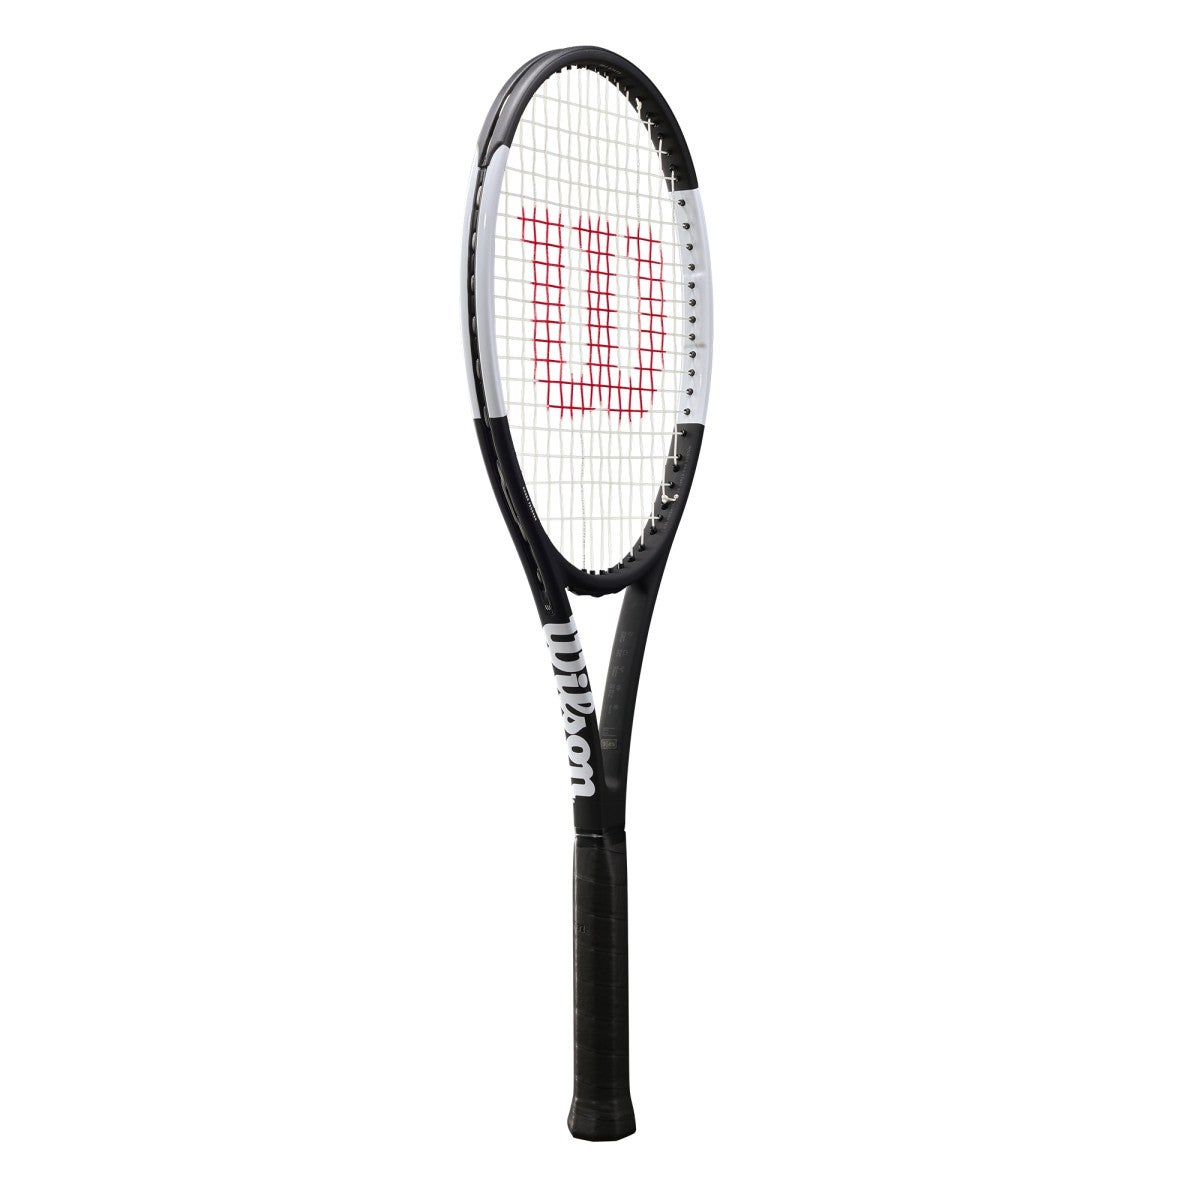 Pro Staff 97 Countervail Tennis Racket